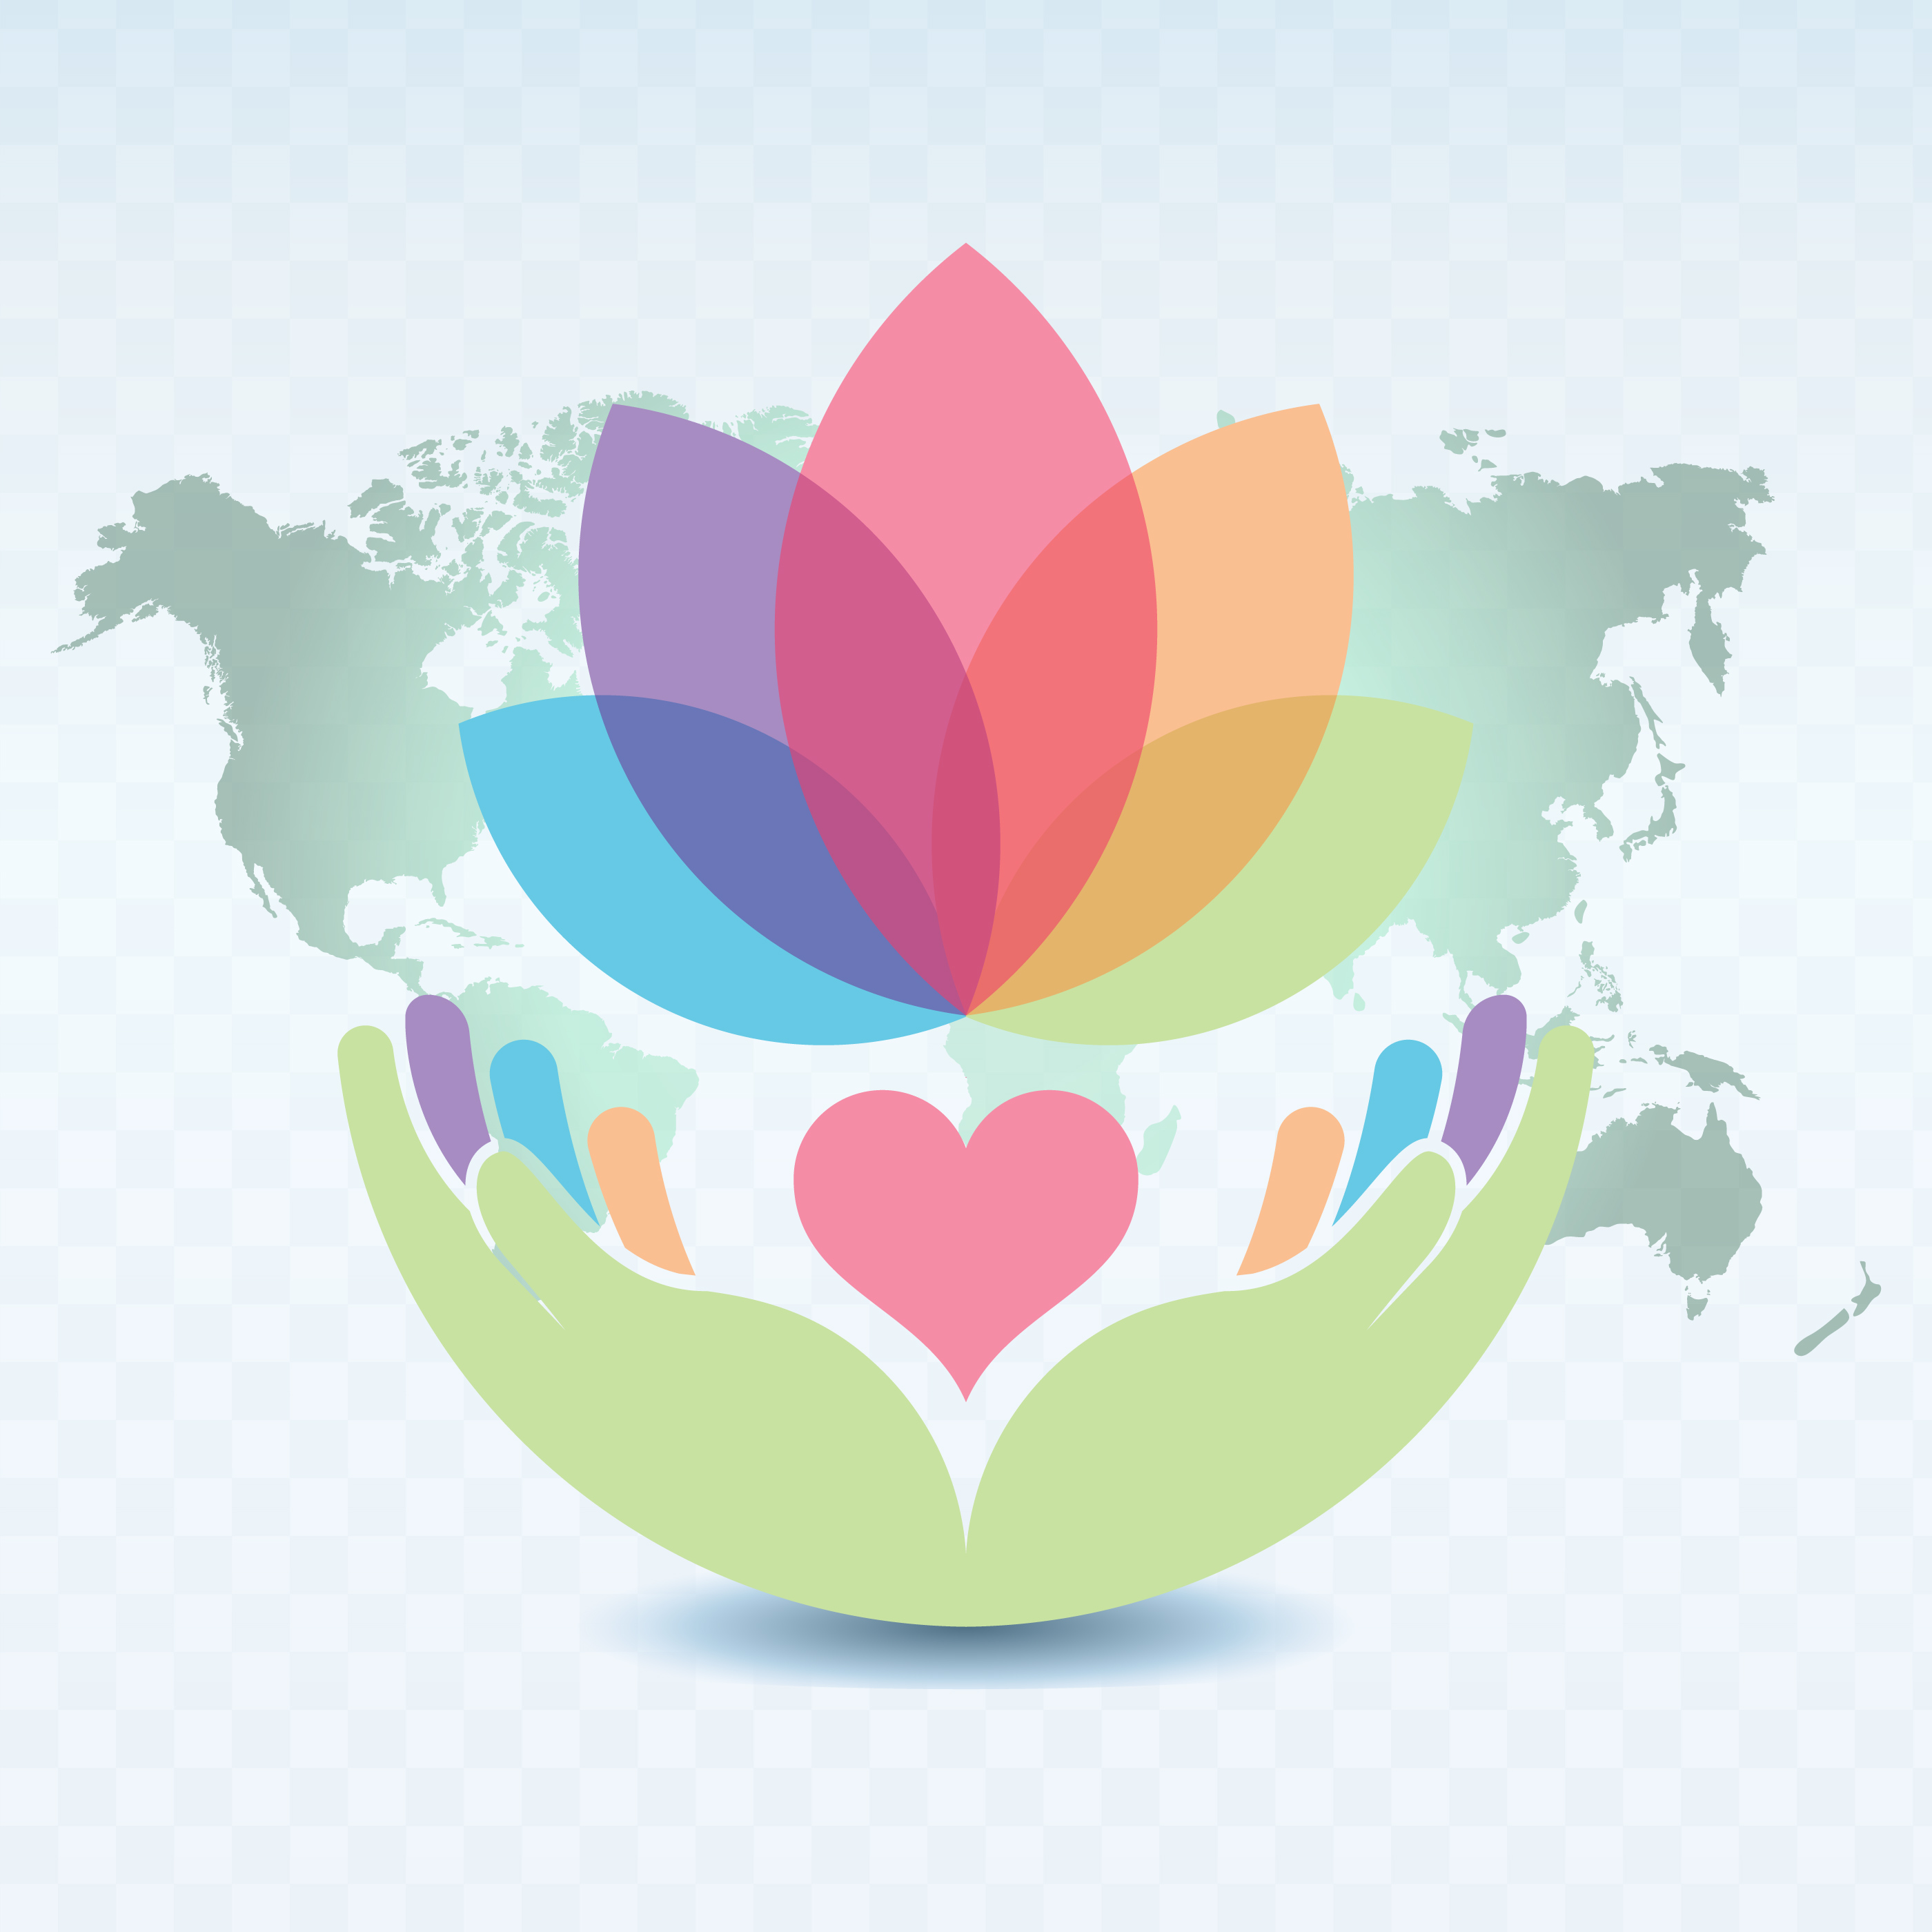 Hands holding a heart and lotus flower illustration download free hands holding a heart and lotus flower illustration download free vector art stock graphics images izmirmasajfo